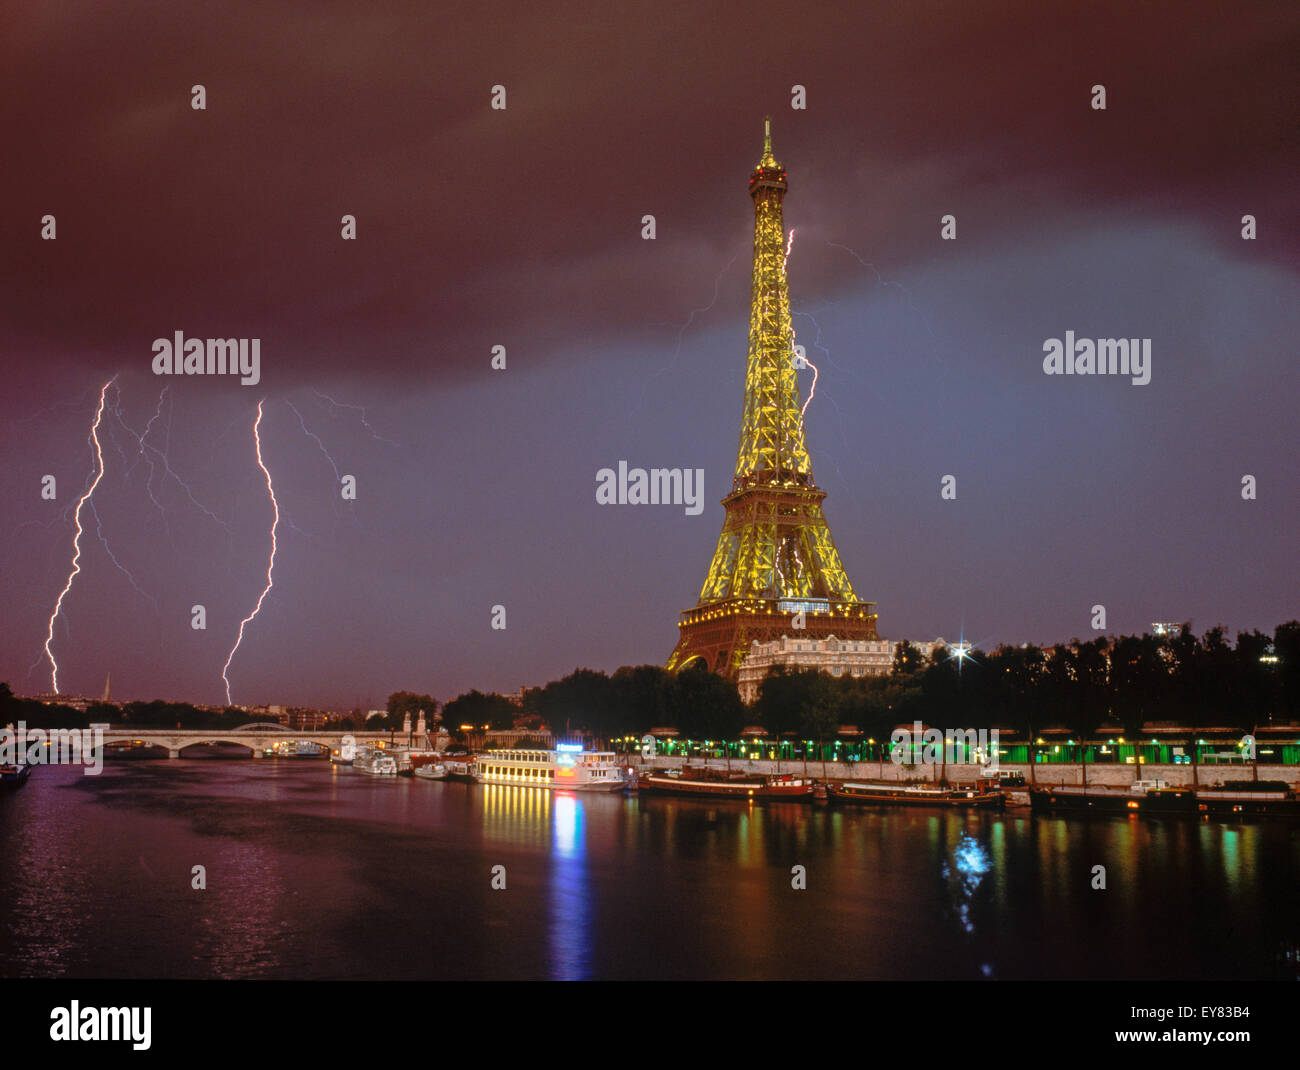 Lightning Bolt And Storm Over Paris At Night With Eiffel Tower River Seine This Image Is Not Digitally Enhanced Real